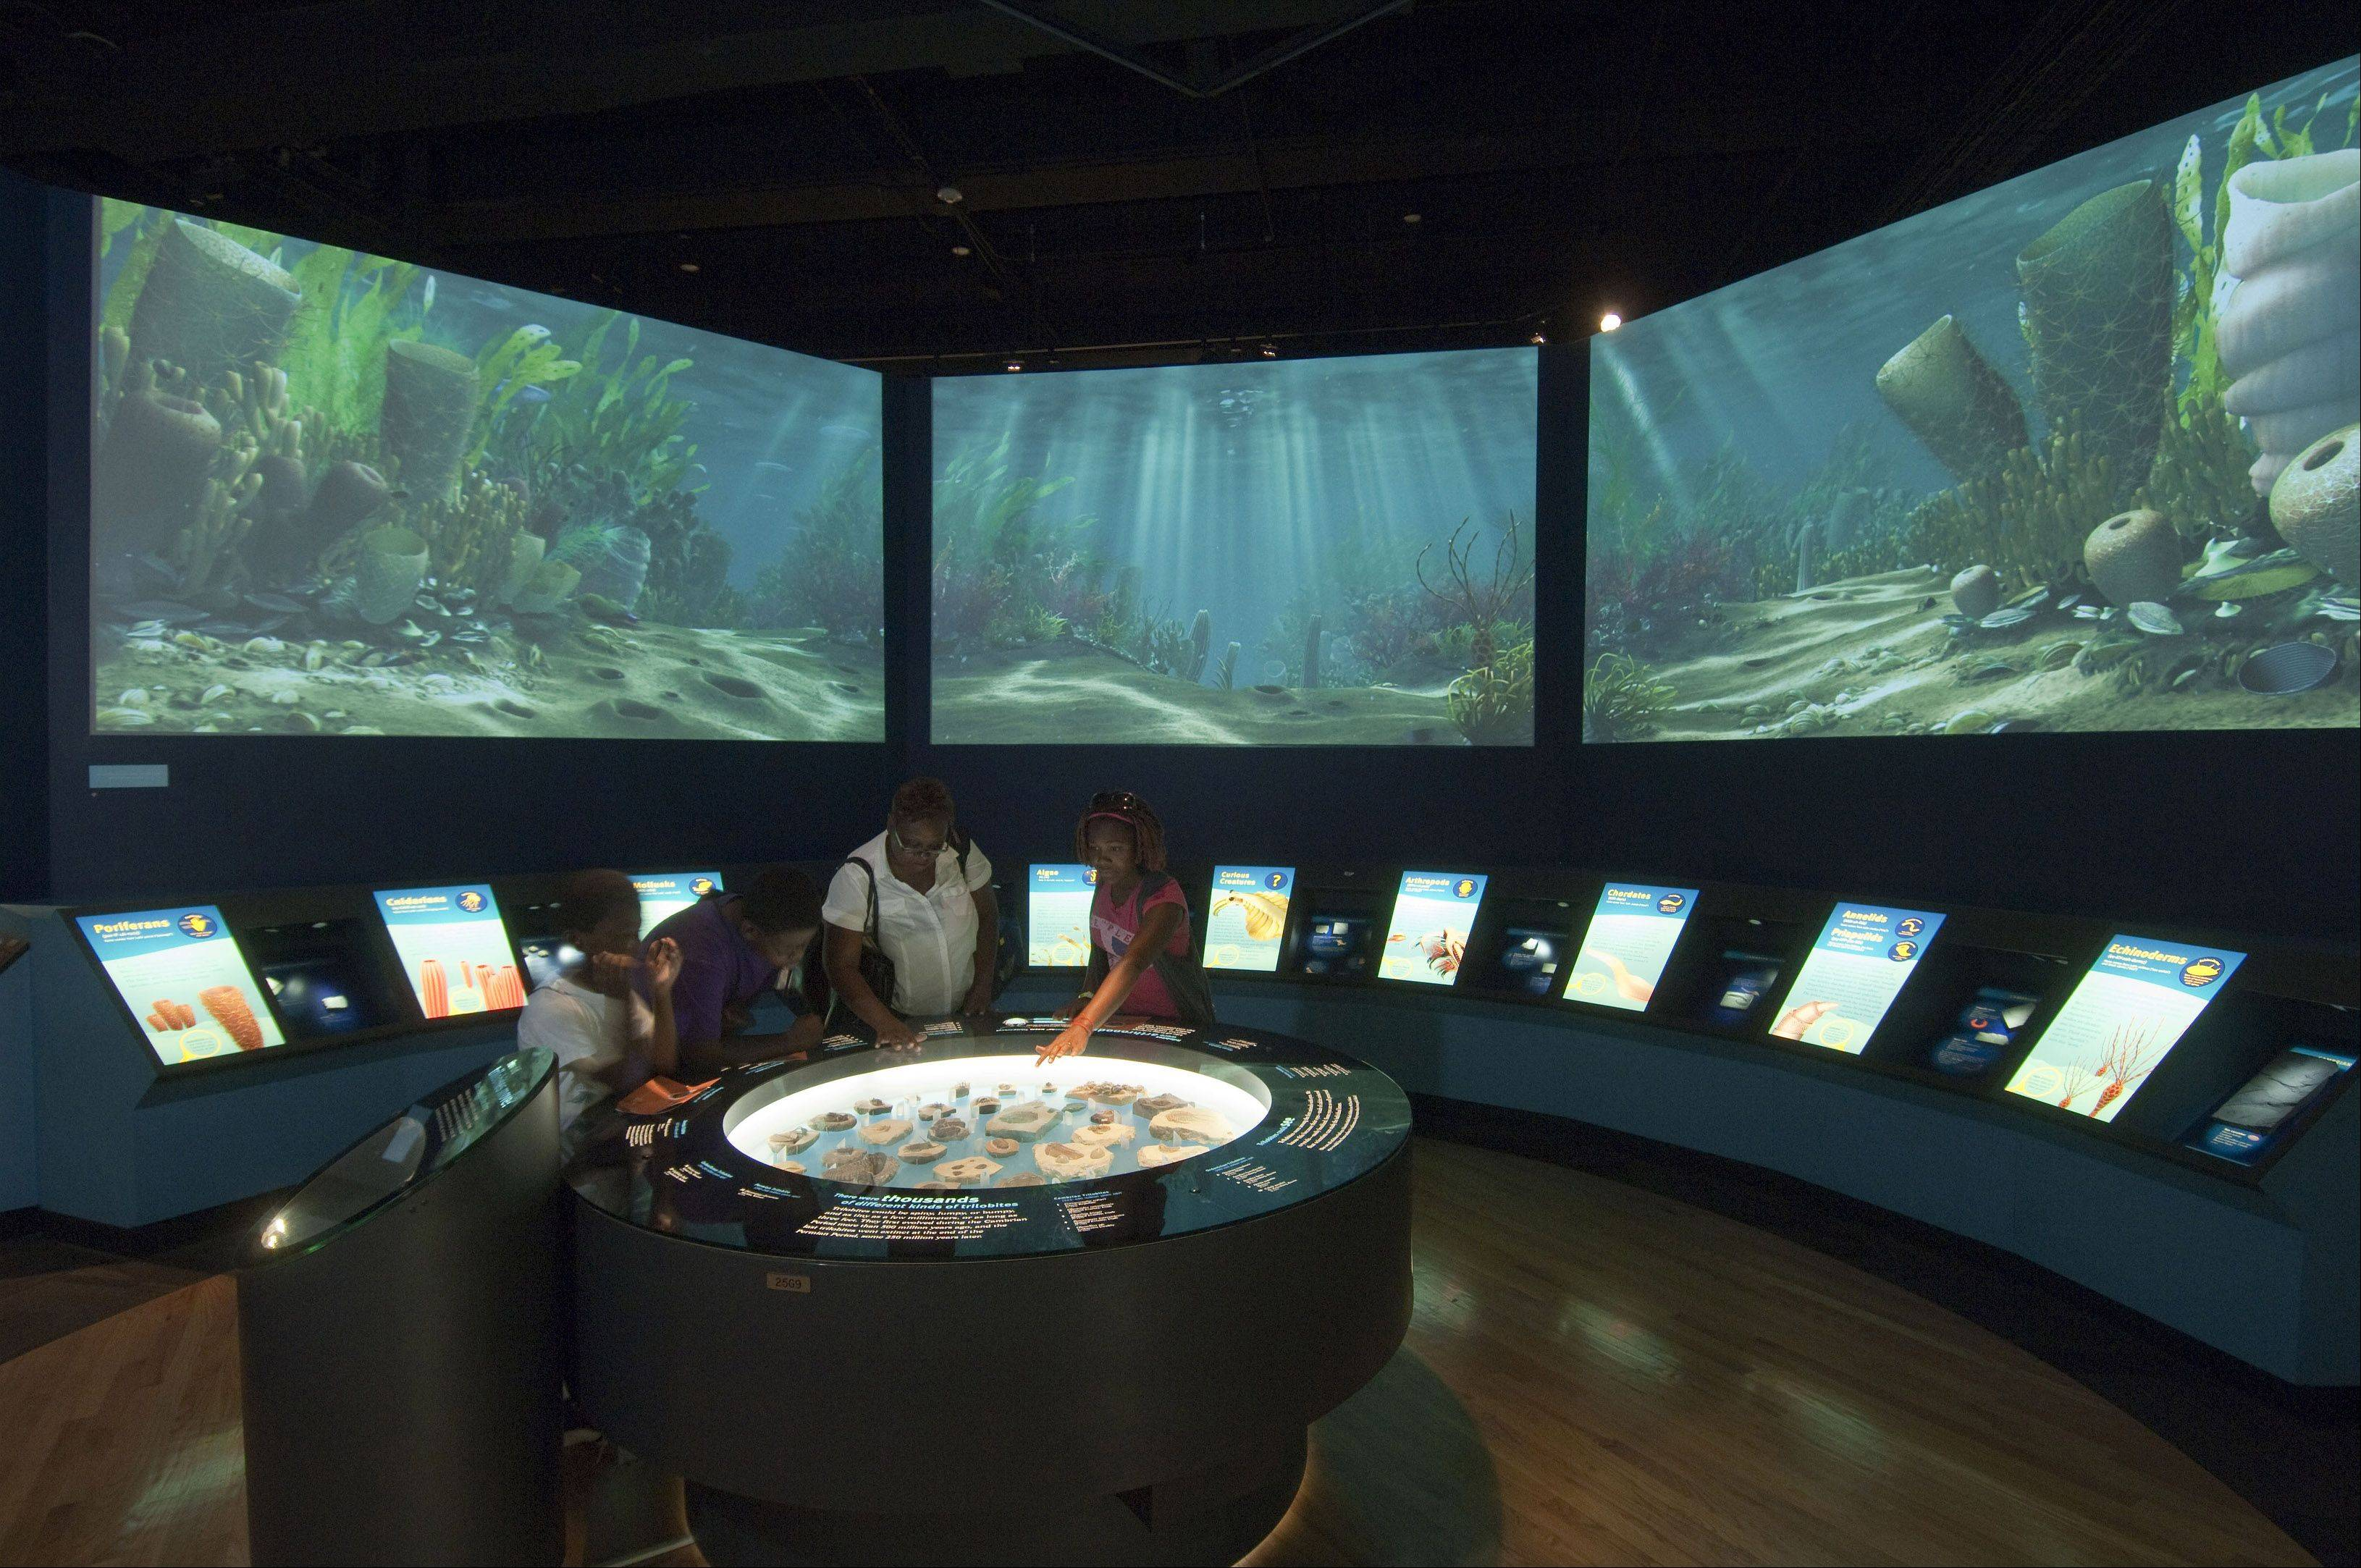 An image of sea life during the Cambrian period, the time spanning 542 million to 488 million years ago when life-forms quickly diversified, is seen in this curved projection surrounding visitors at the Field Museum's Evolving Planet exhibit.